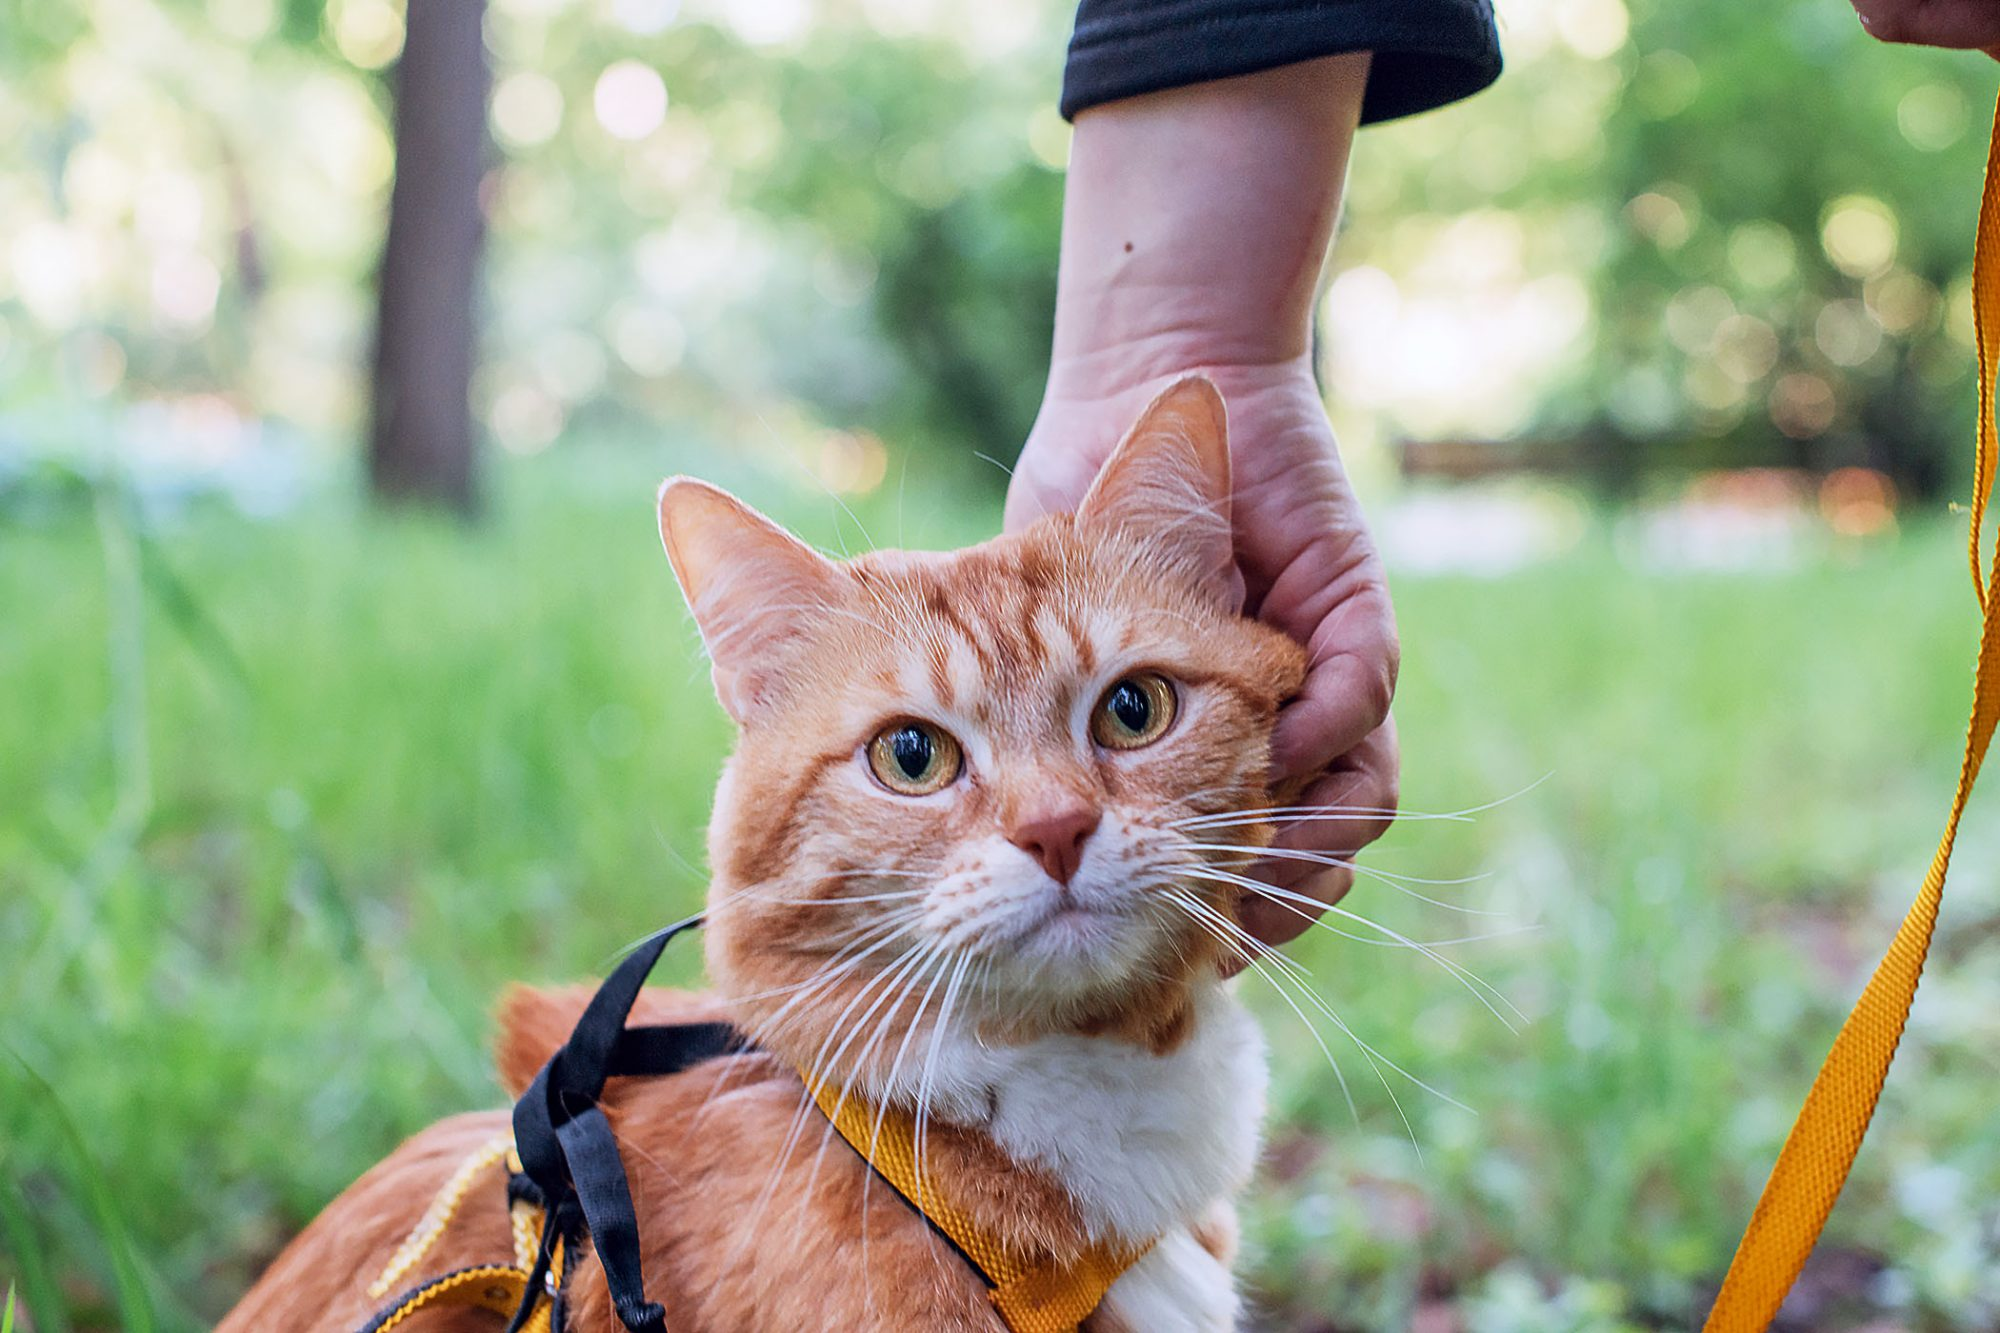 ginger cat outside on a hike wearing an orange harness for safety